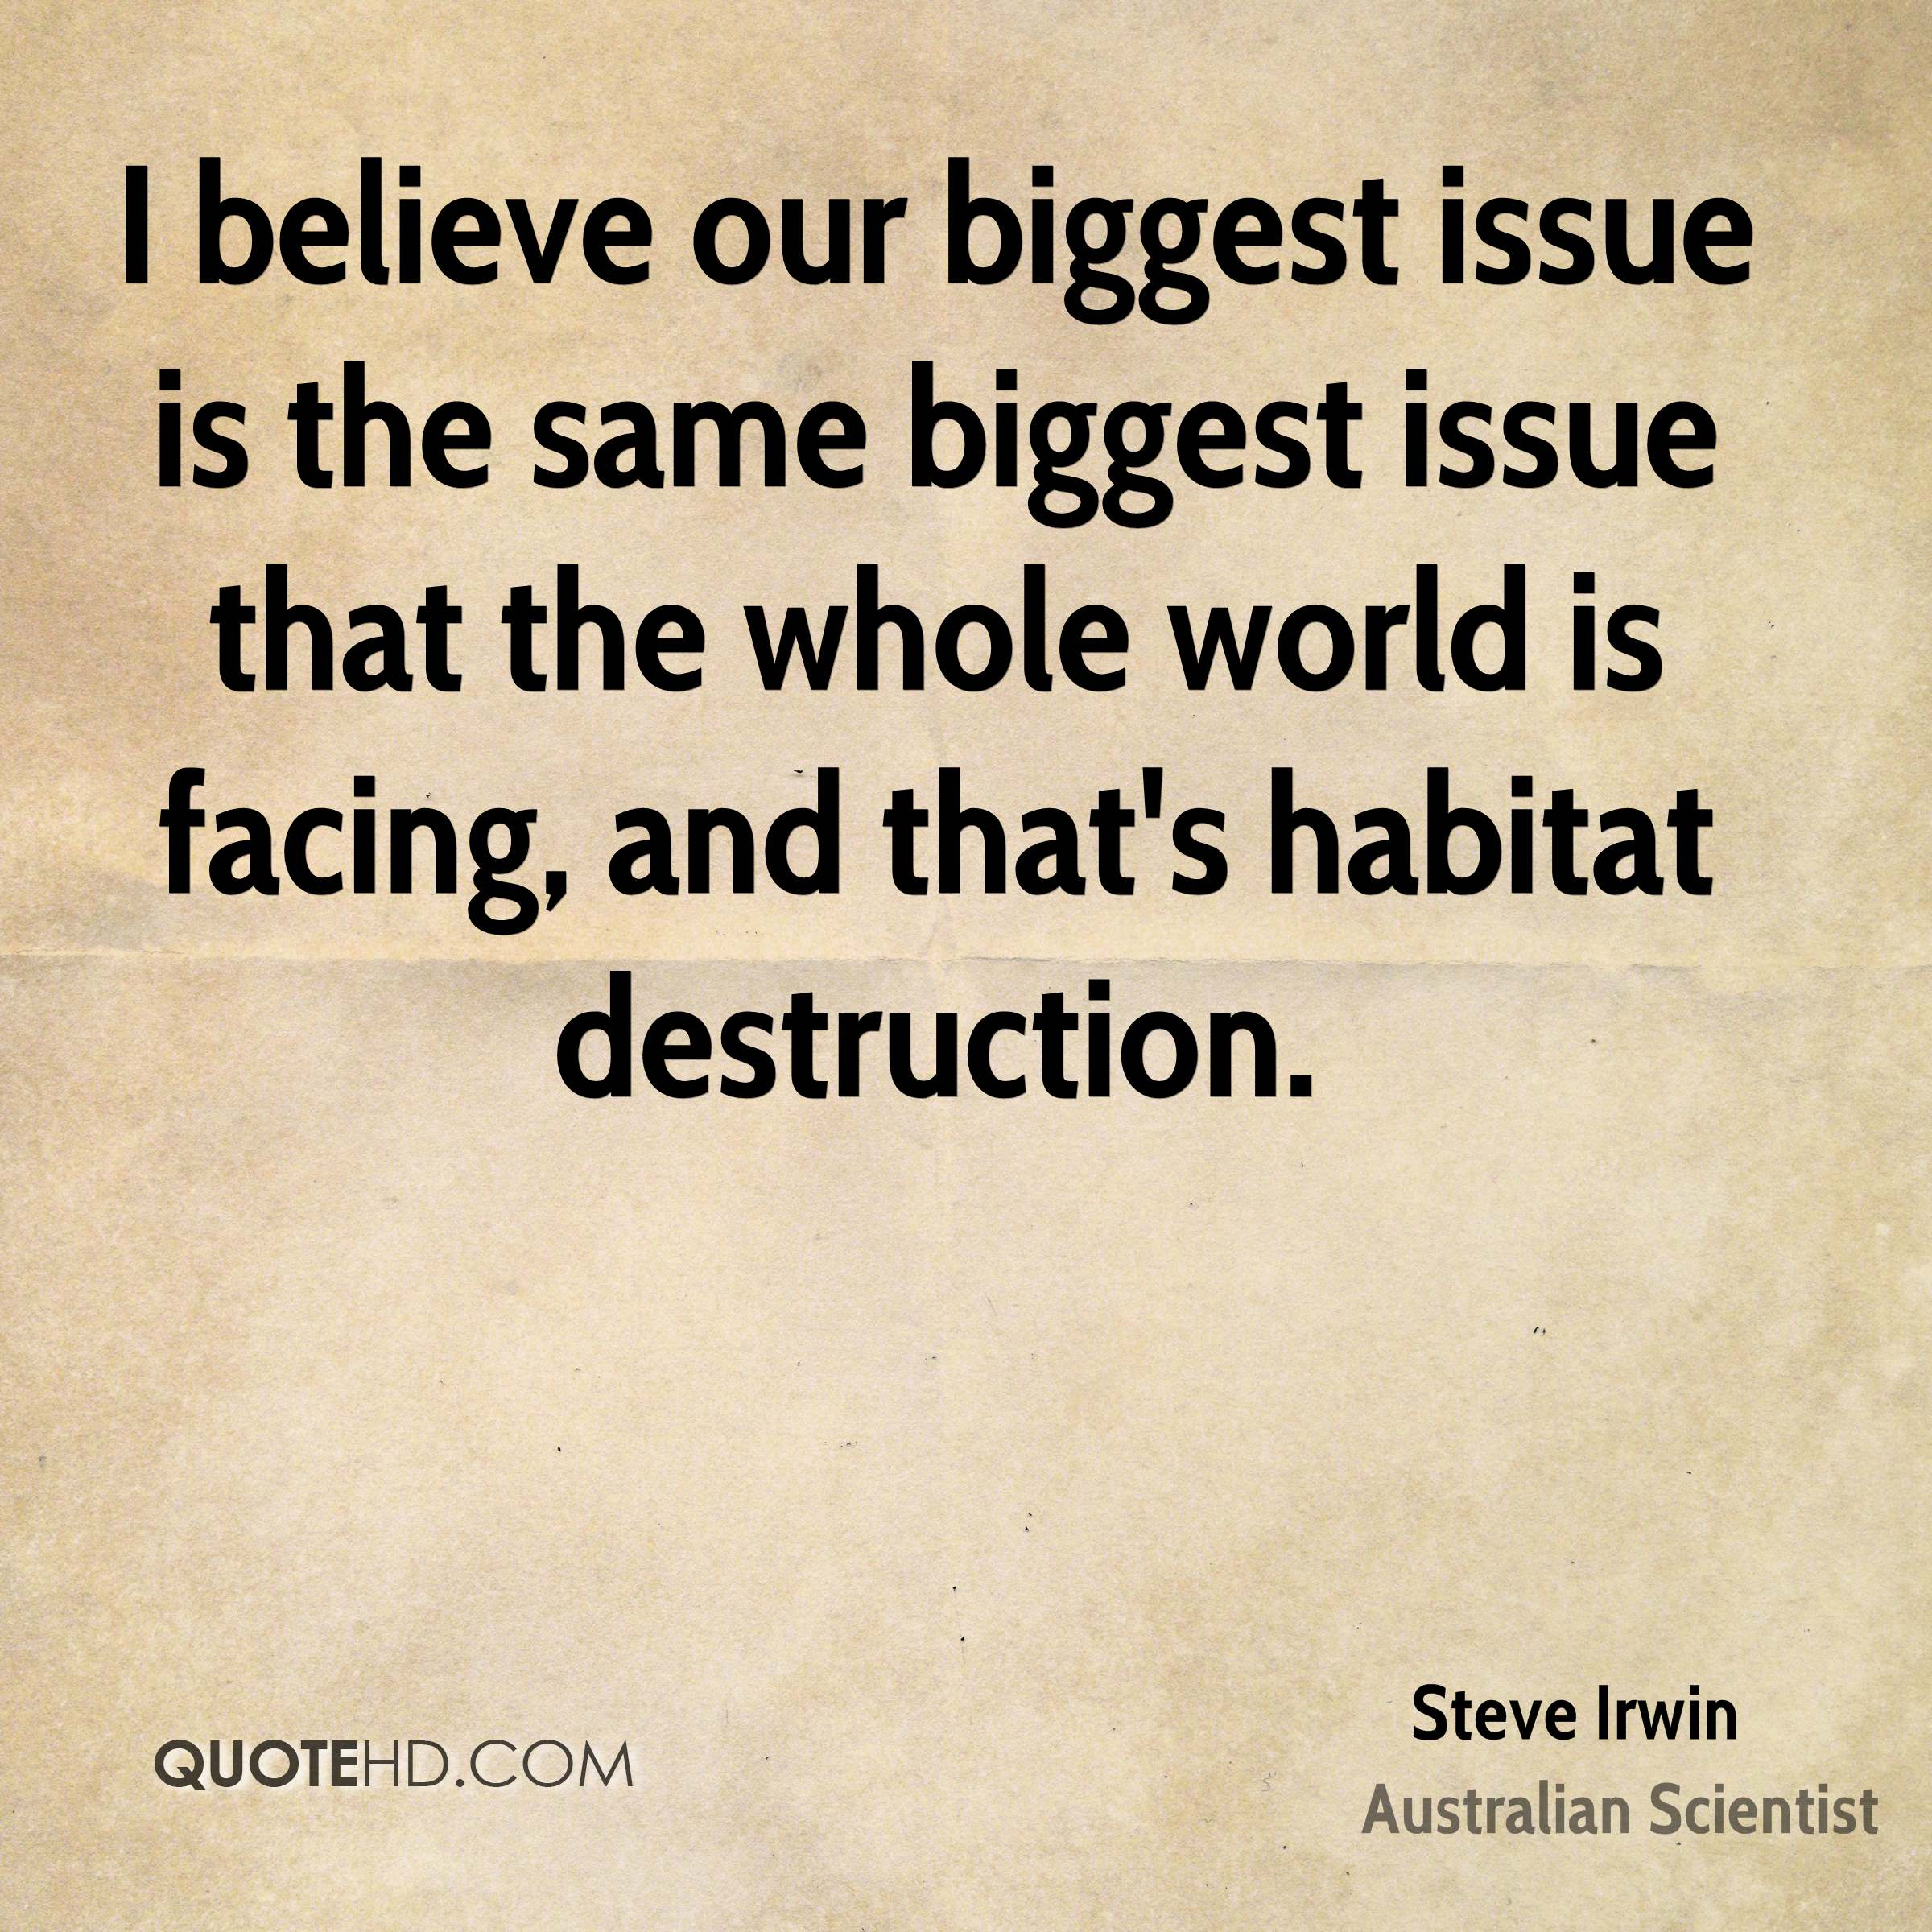 I believe our biggest issue is the same biggest issue that the whole world is facing, and that's habitat destruction.